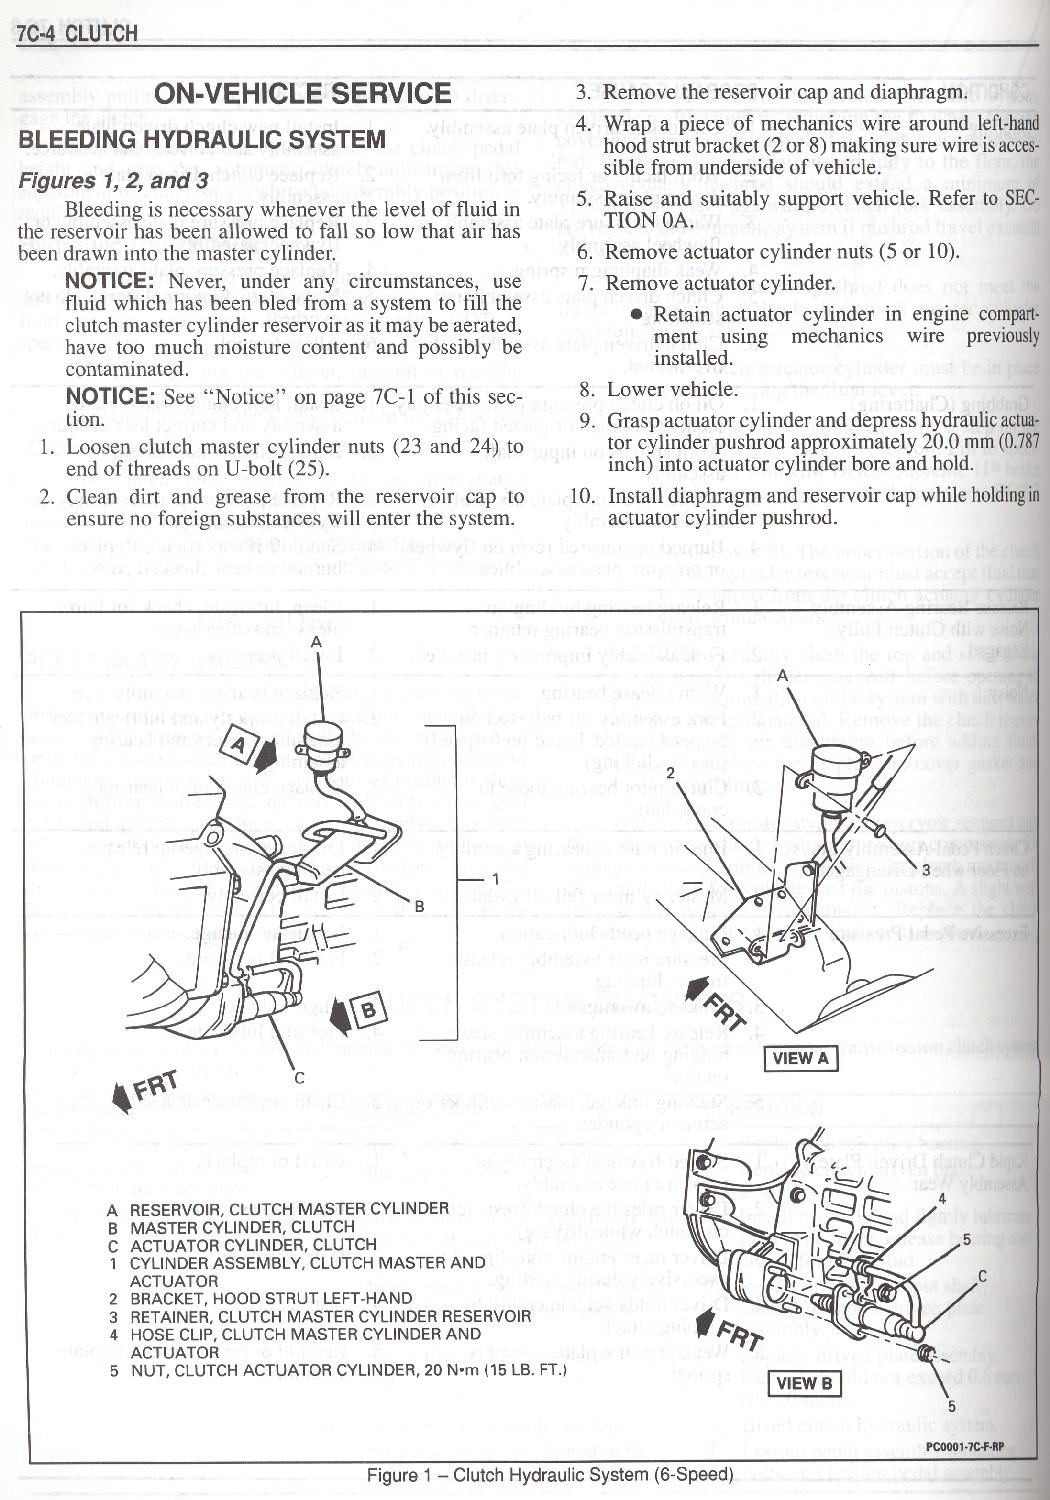 hight resolution of  manual describing the bleeding procedure picture1 and picture2